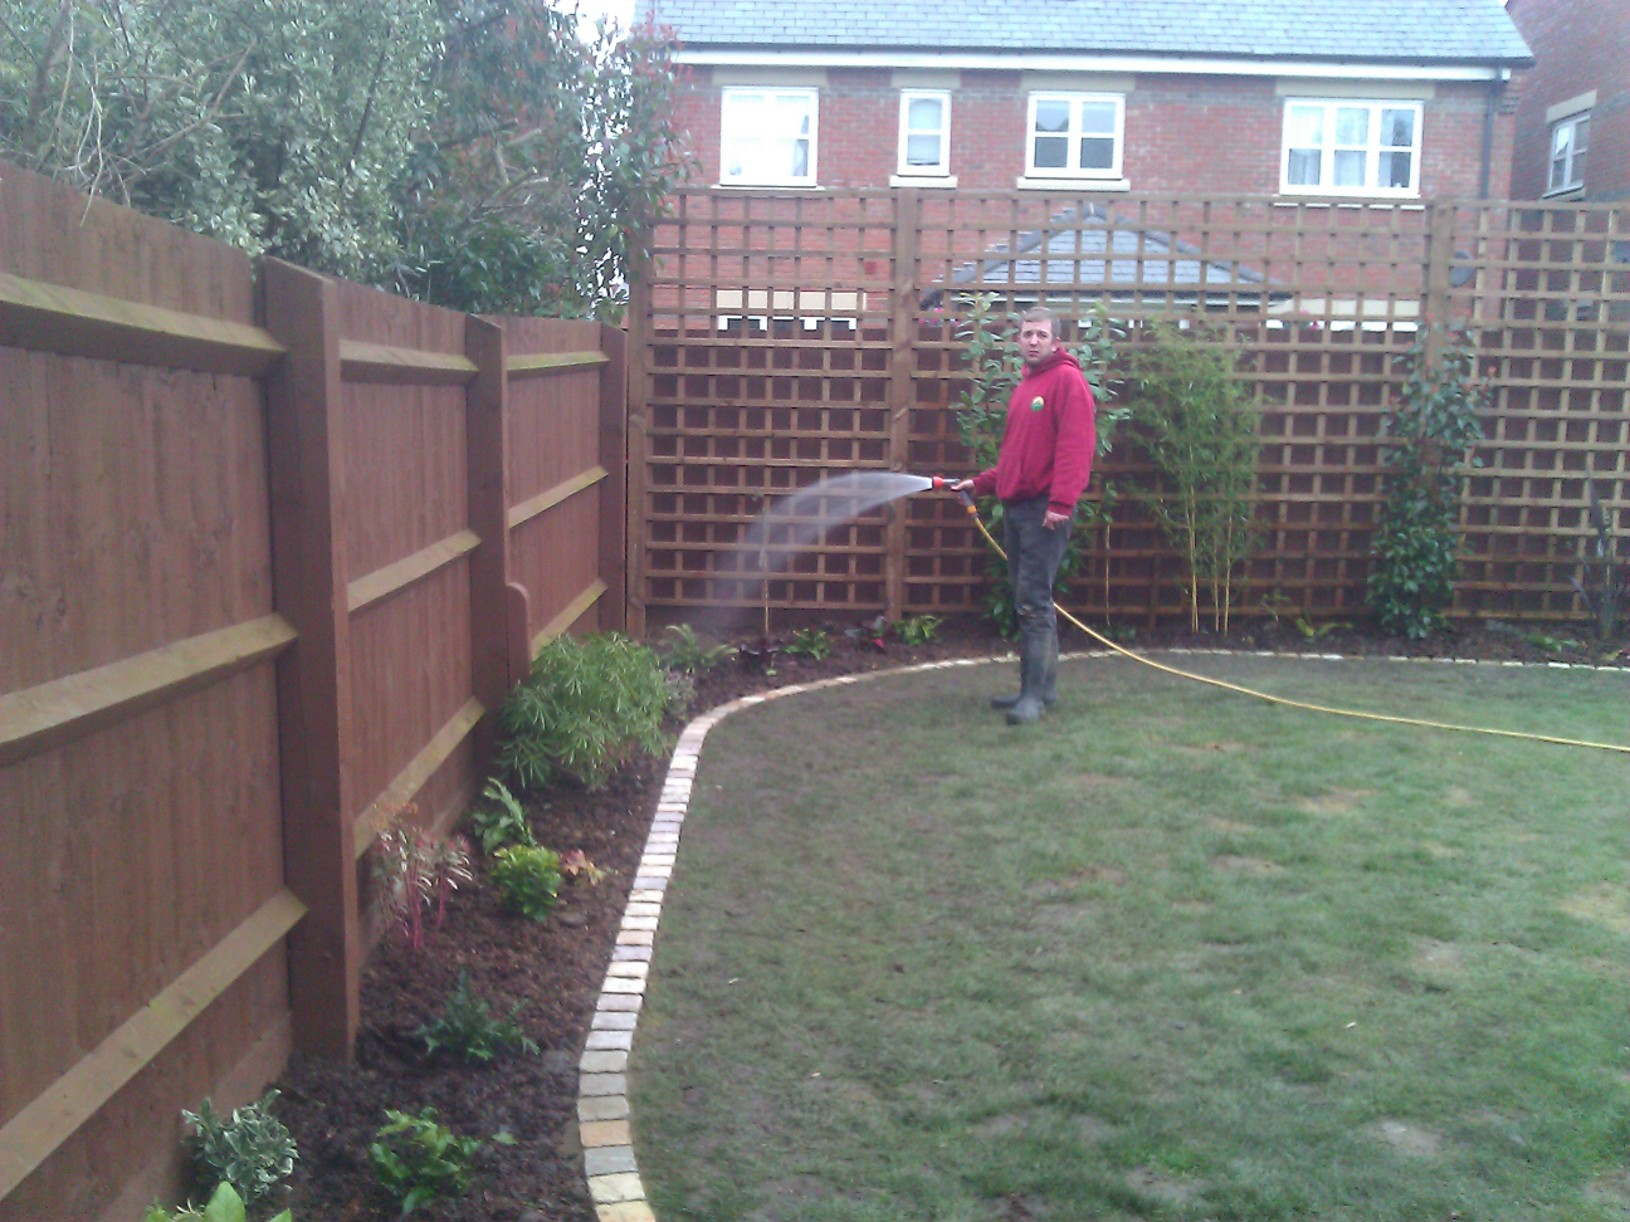 new dawn garden life – garden design and landscaping in st albans